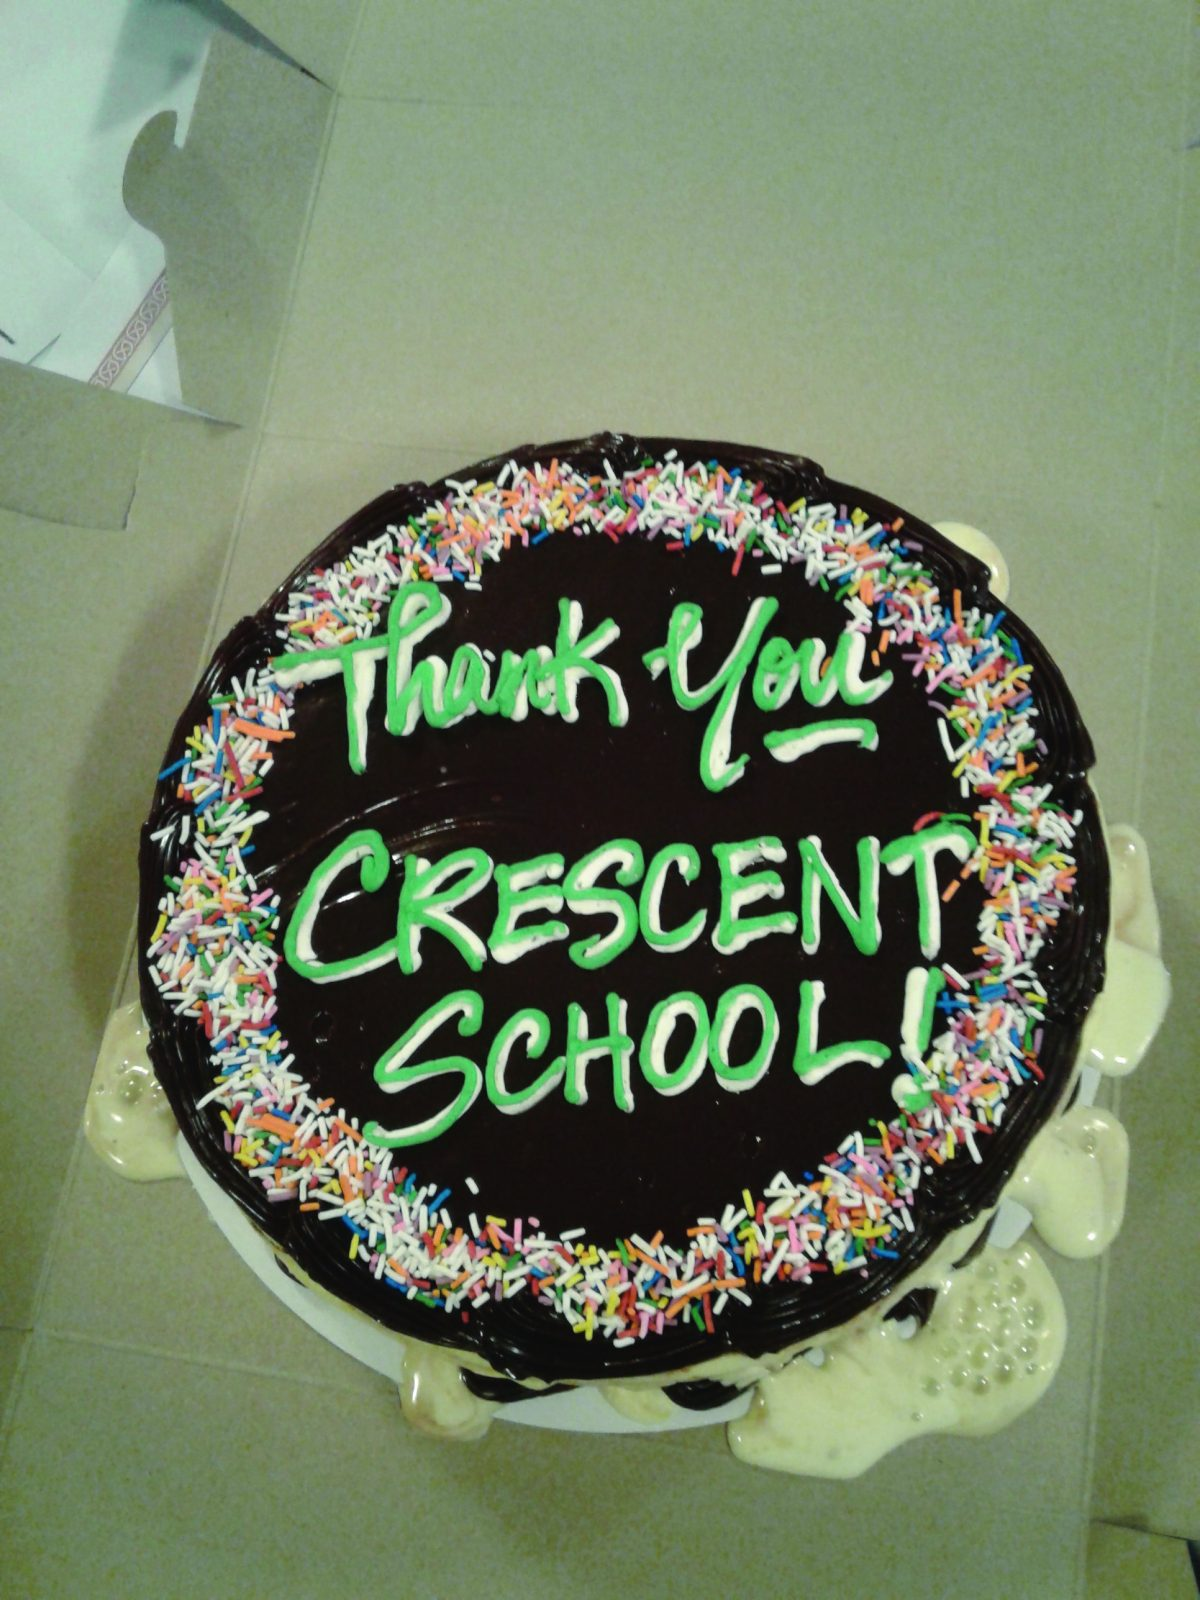 Cake with Thank You Crescent School written on it